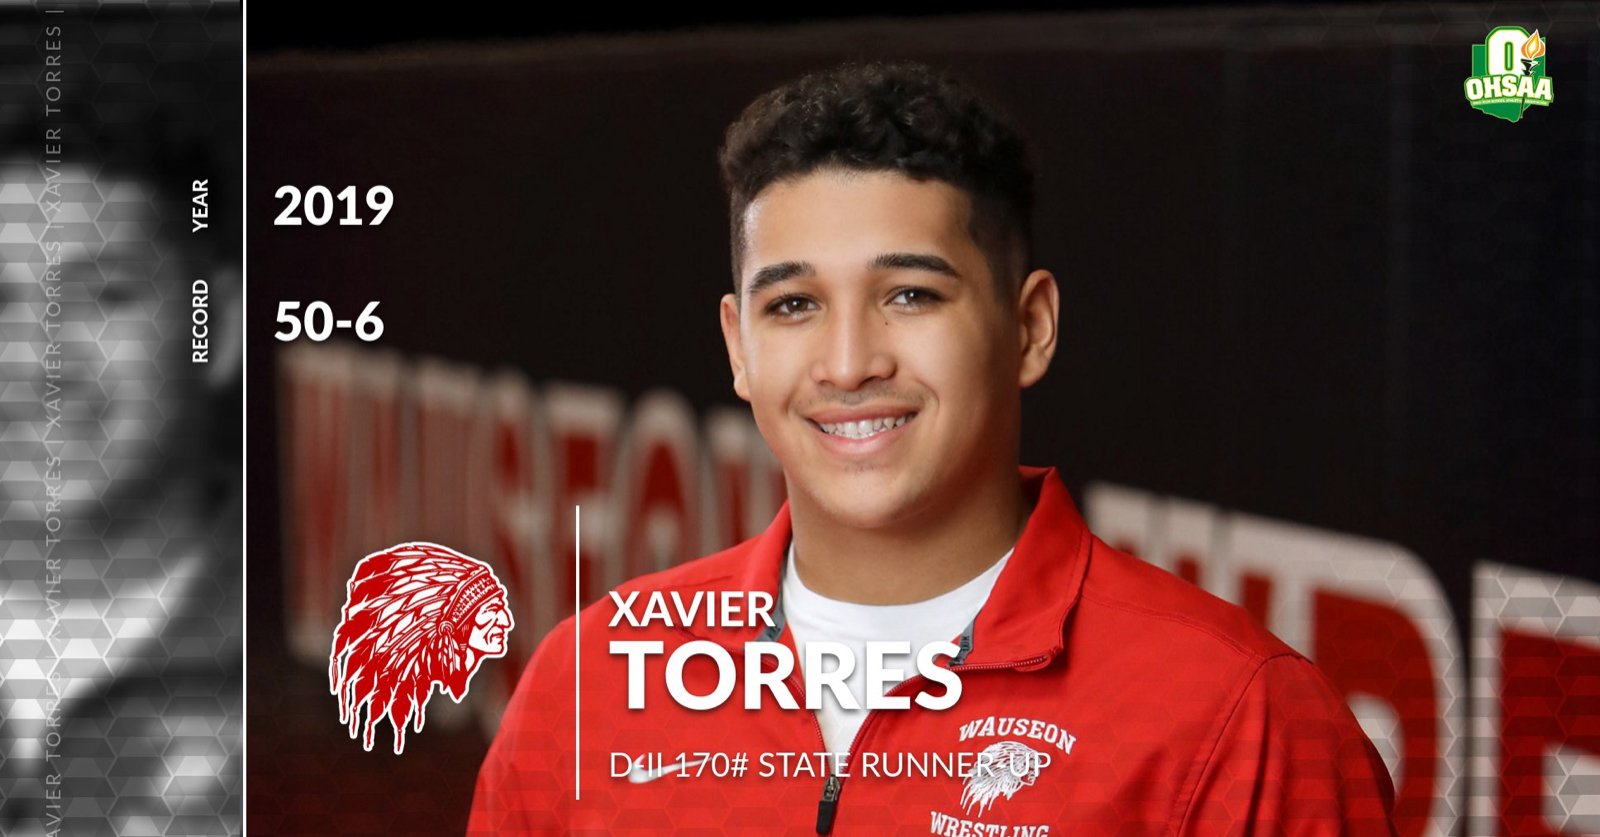 Xavier Torres – State Wrestling Runner-up